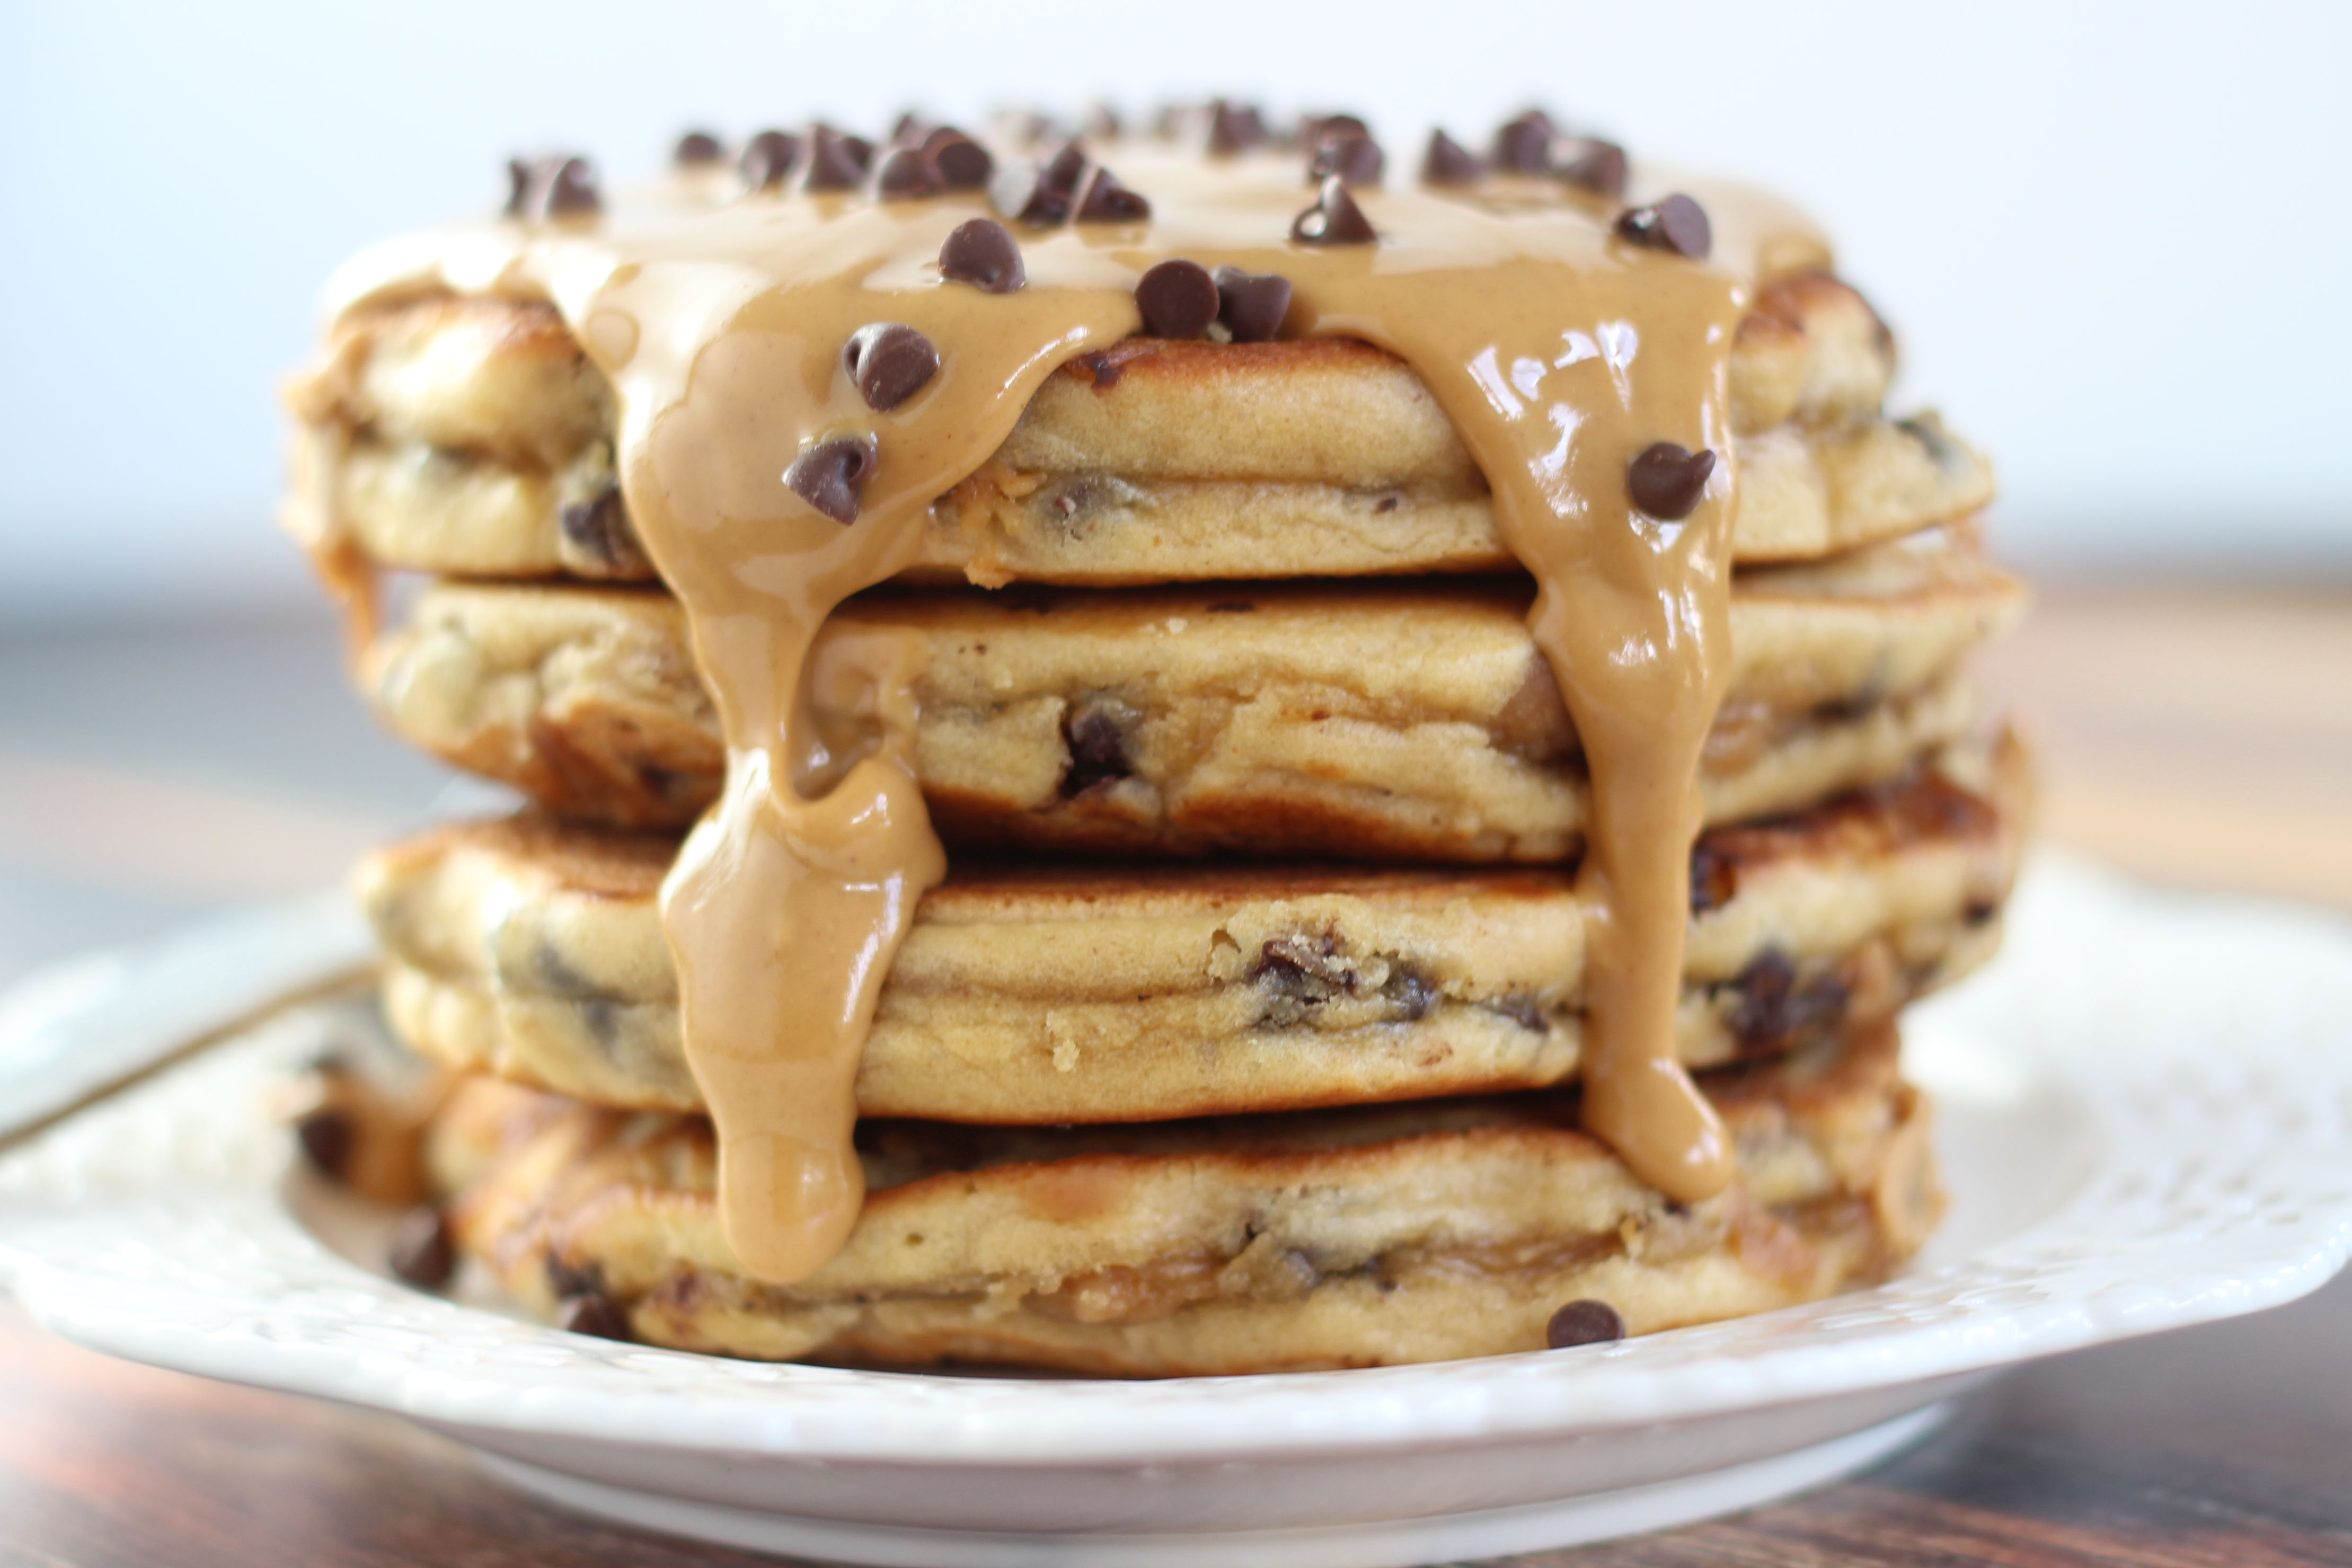 Permalink to Chocolate Chip Pancake Recipe